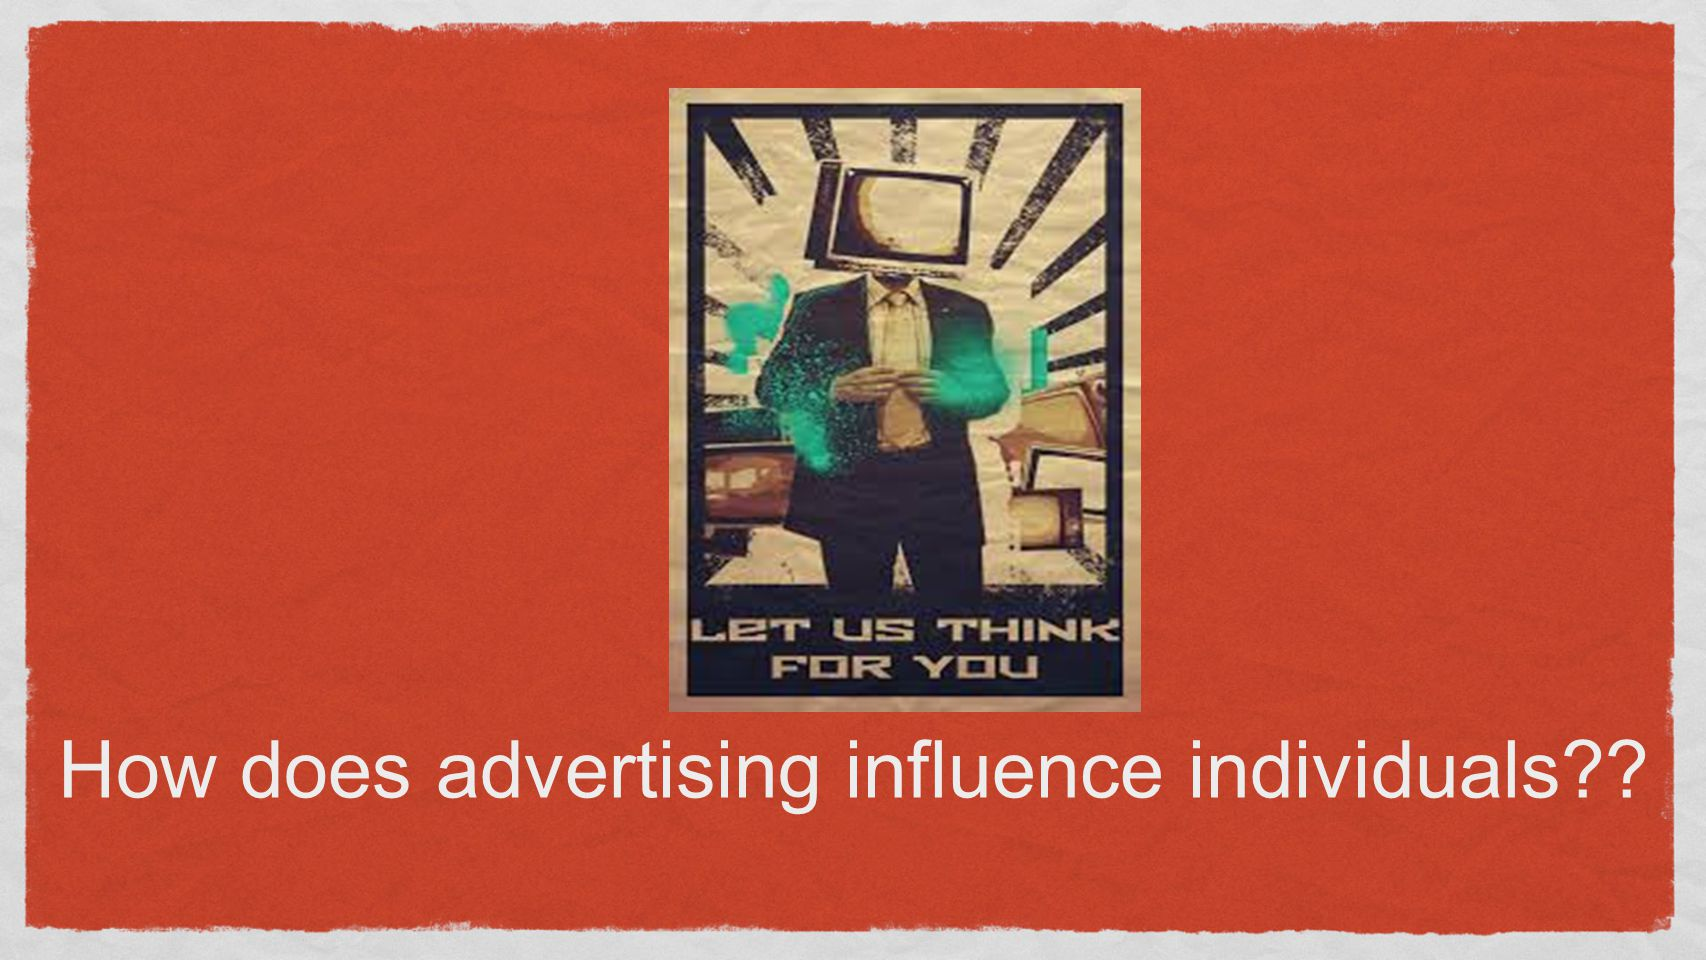 How does advertising influence individuals??